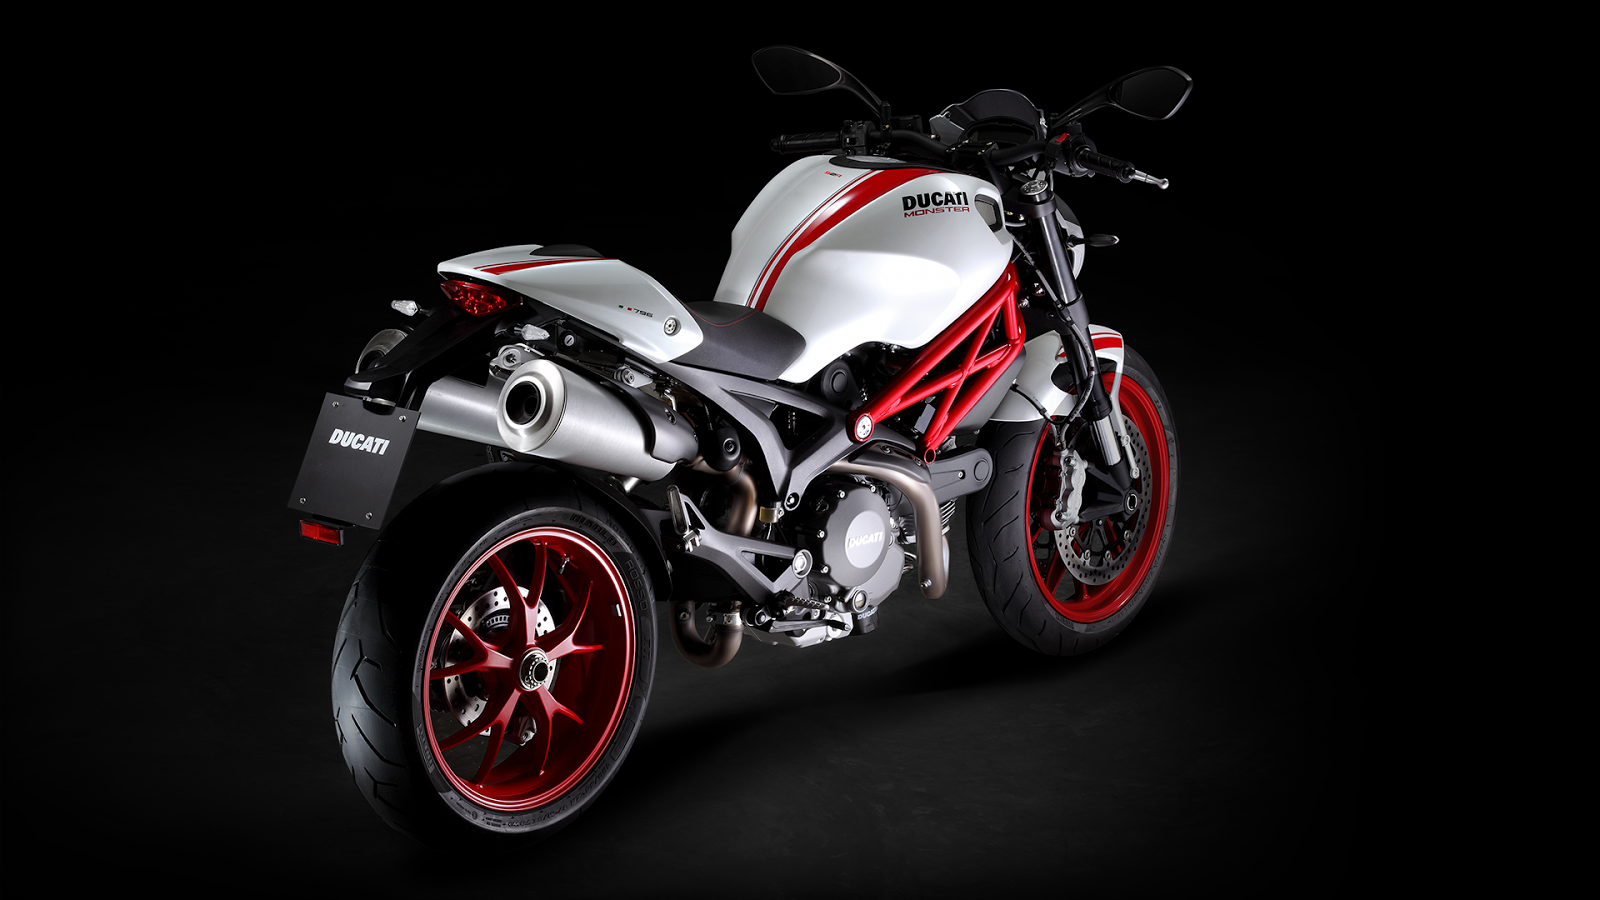 Ducati Monster 796 Corse Stripe 2015 images #146213